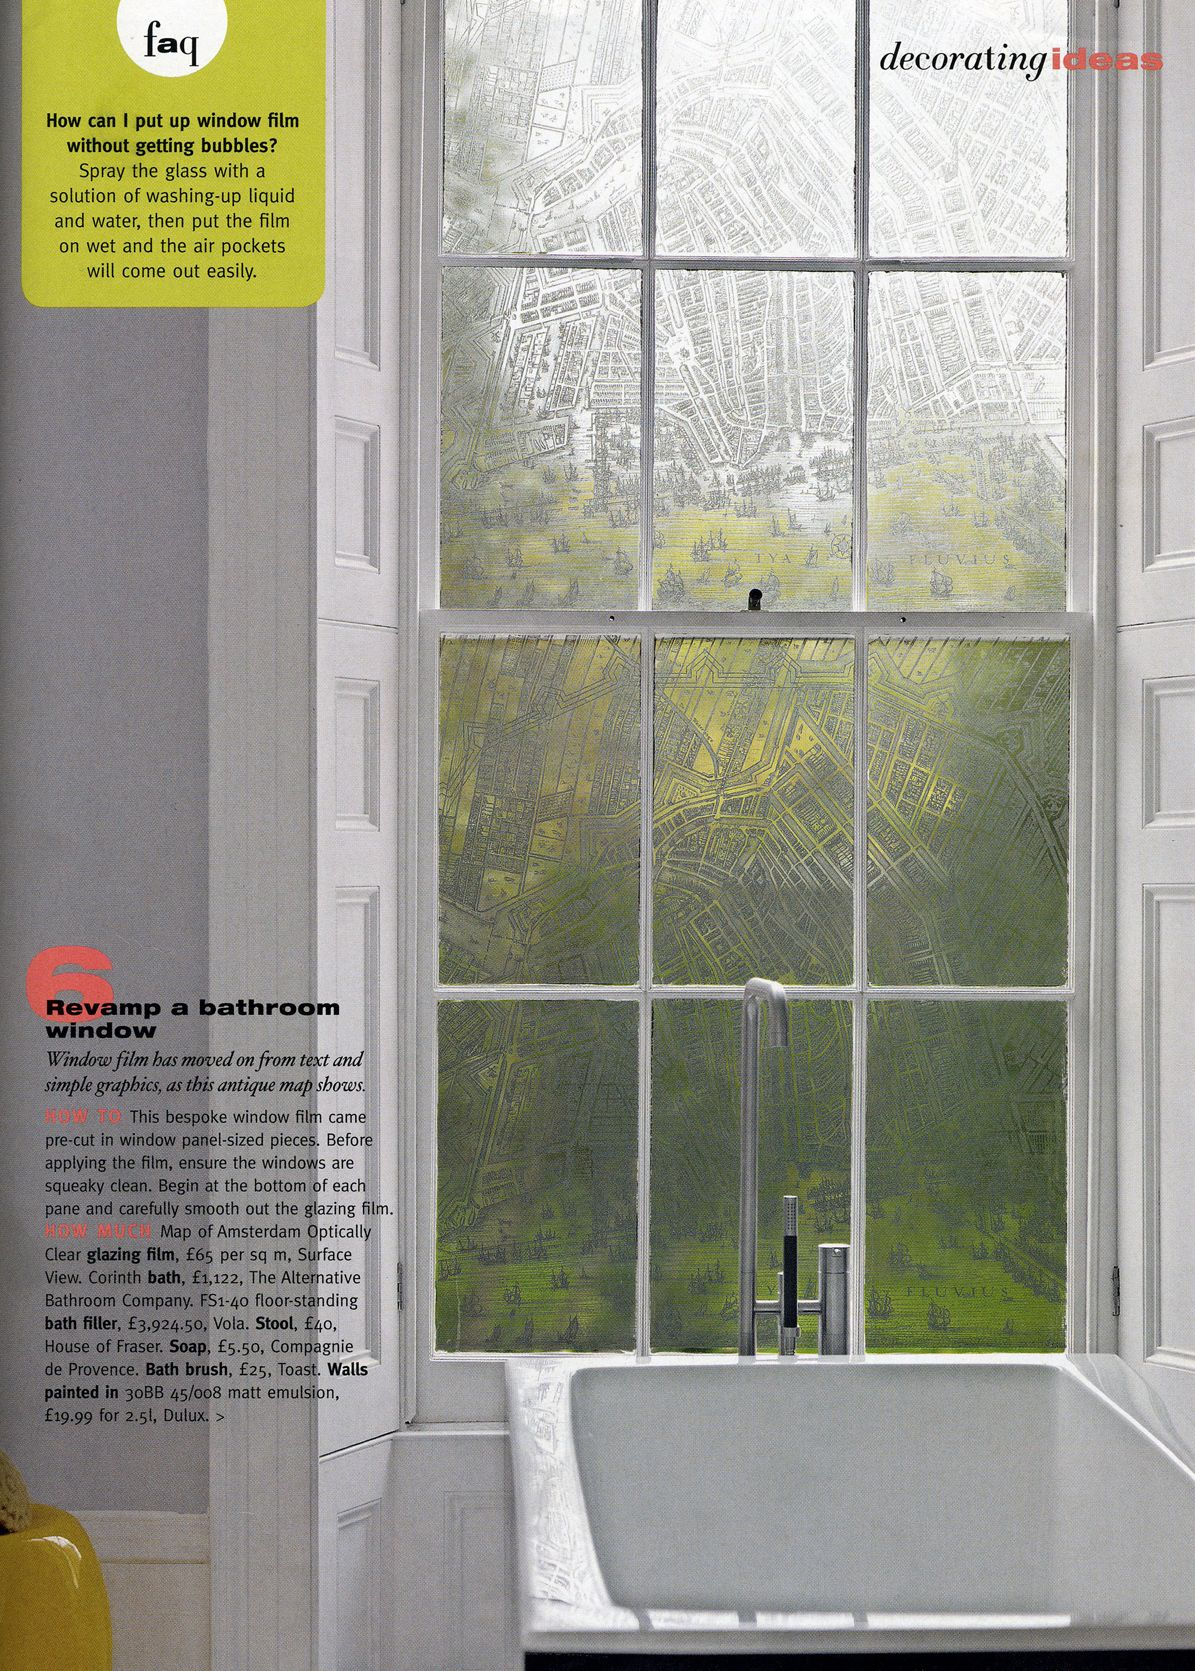 Old window ideas for outside  surface view window films as featured in living etc magazine a